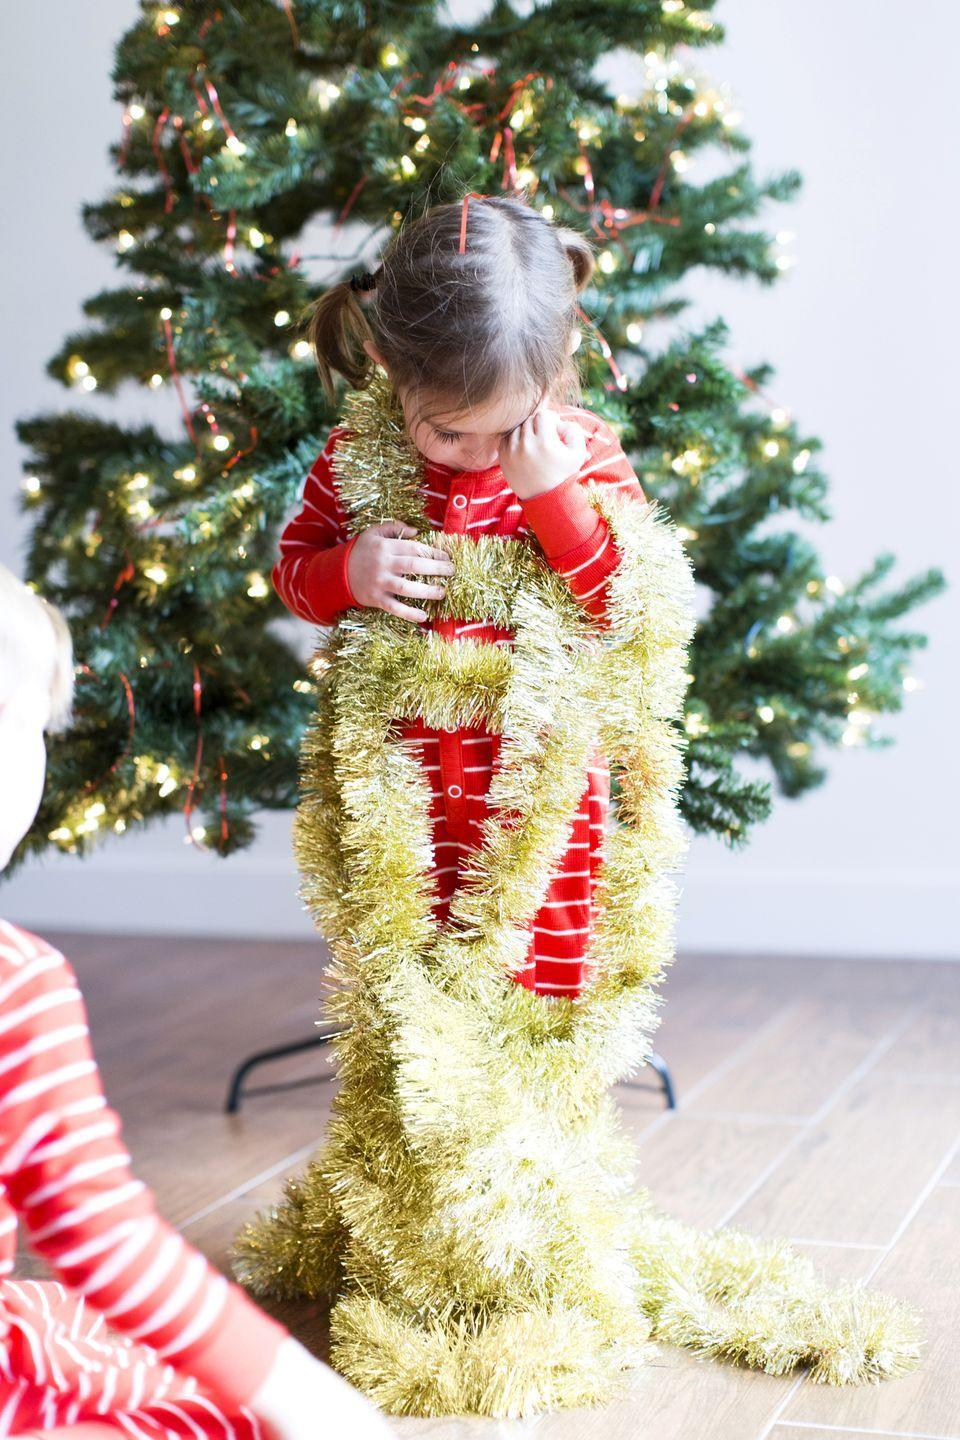 "<p>Tinsel was invented in 1610 in Germany and was originally spun from real silver, making it far from the chintzy decoration it is now. It also has an edgy history. The U.S. government <a href=""https://www.history.com/topics/christmas/history-of-christmas-trees"" rel=""nofollow noopener"" target=""_blank"" data-ylk=""slk:once banned tinsel"" class=""link rapid-noclick-resp"">once banned tinsel</a> because it contained poisonous lead. But never fear; now it's made of plastic. However, you should still use caution if you have pets or small children, since it's still harmful if swallowed. </p>"